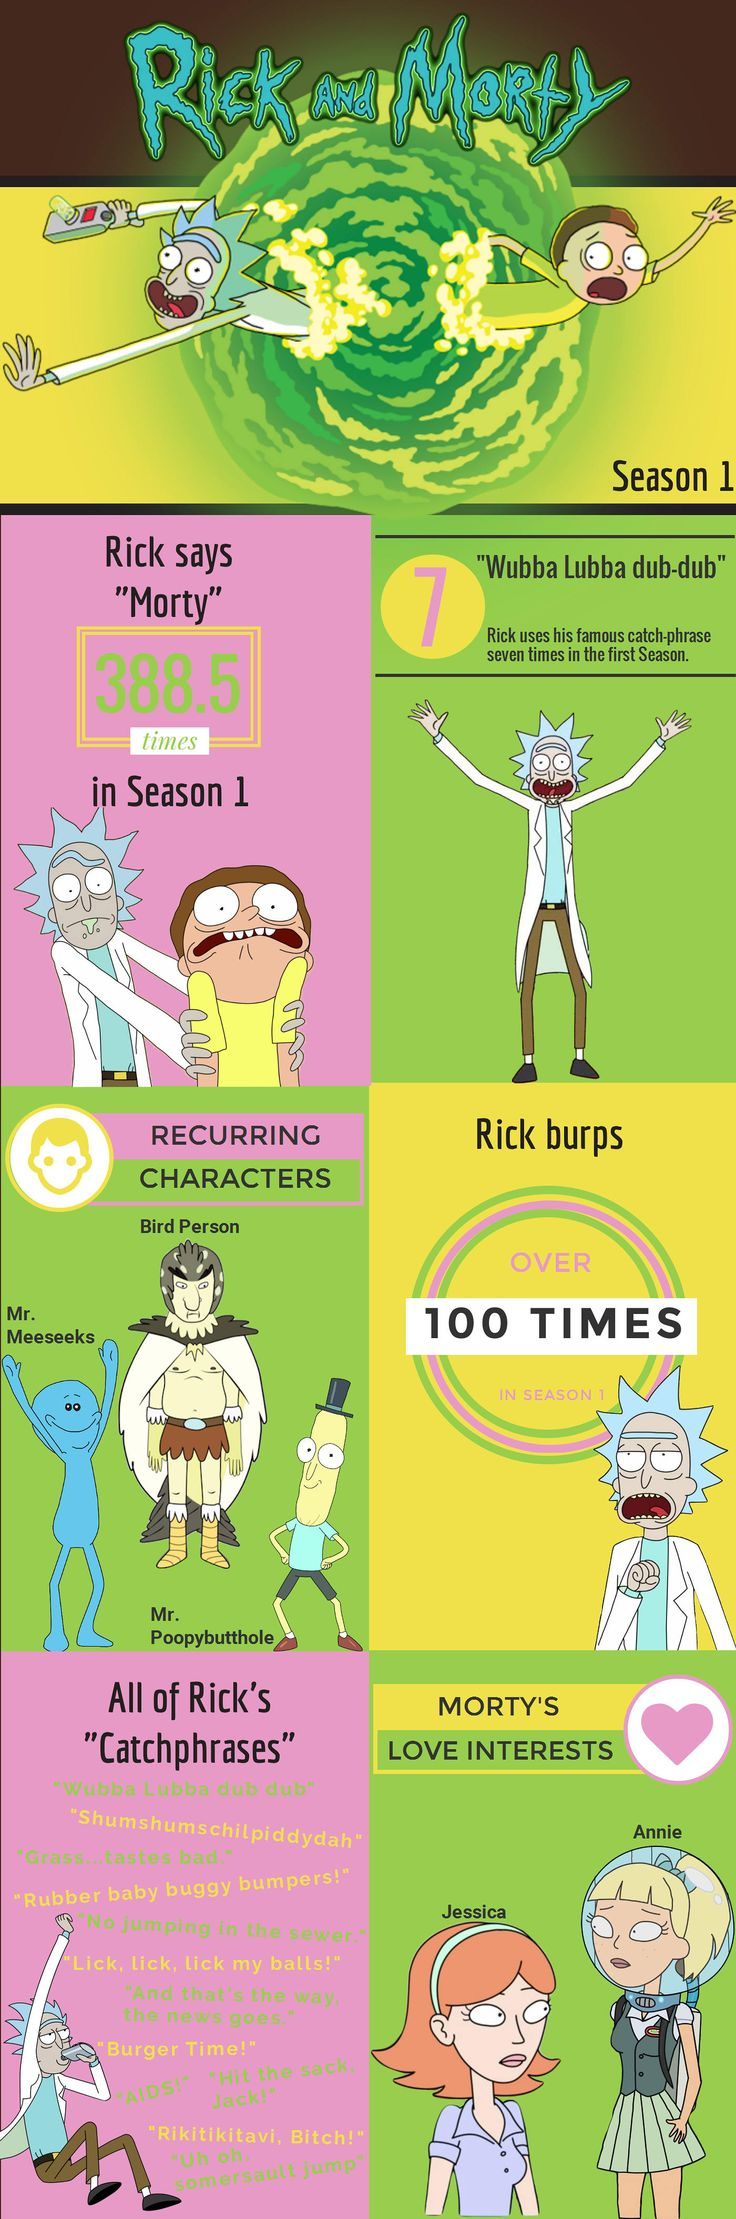 If you're a fan of the show, you'll know that Rick has a lot of catchphrases... and they can be hard to keep track of. So, to commemorate the upcoming release of Season 3 I decided to create an infographic to help refresh the memories of my fellow 'Rick and Morty' fans. Enjoy!